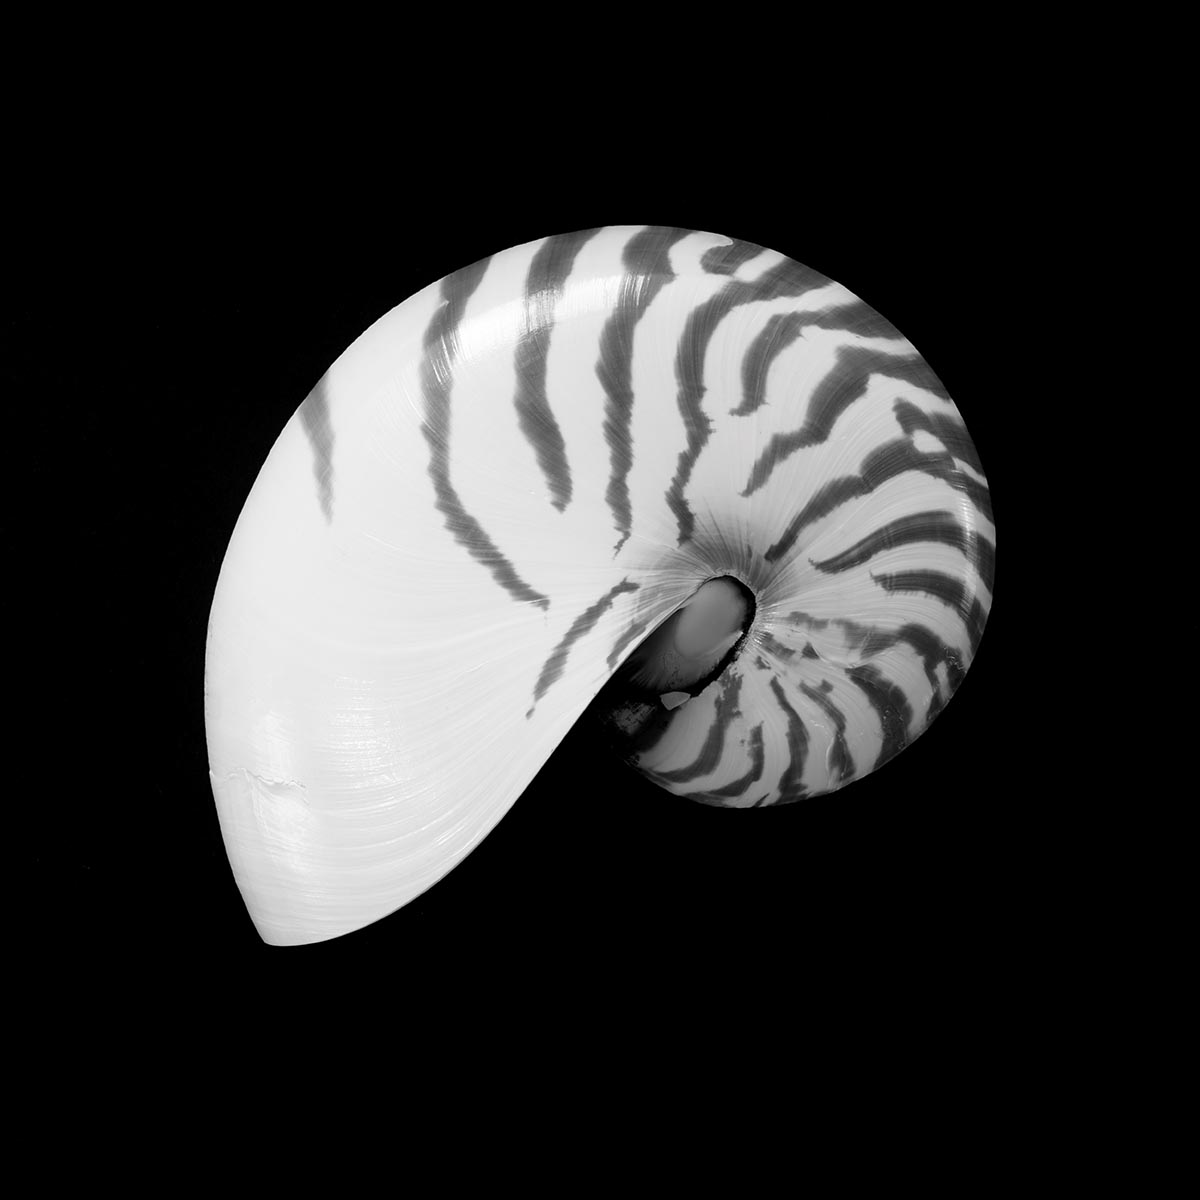 Free stock photo Patterned tiger nautilus shell against a black background